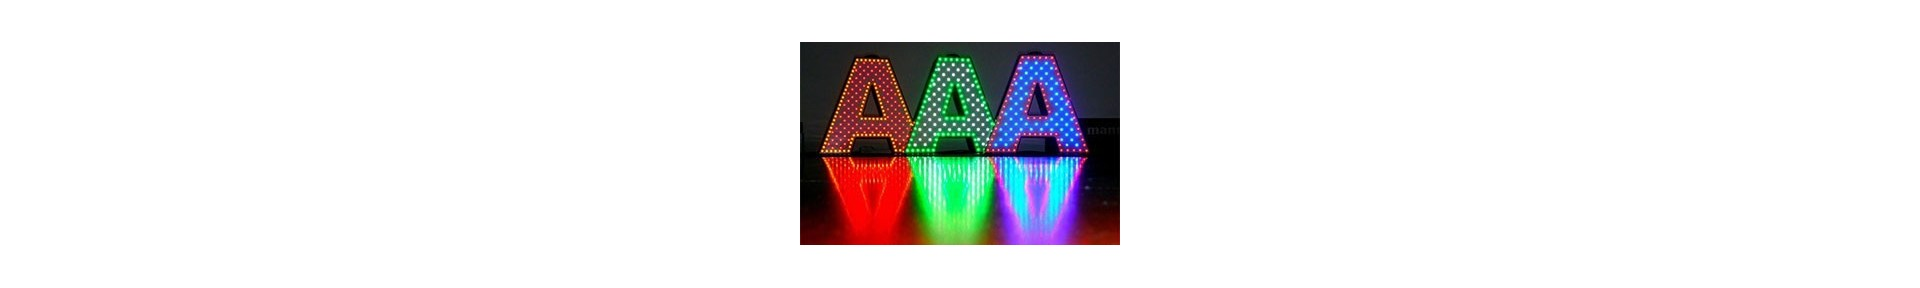 Color Changing Led Channel Letters Canada, Led Channel Letters Canada.